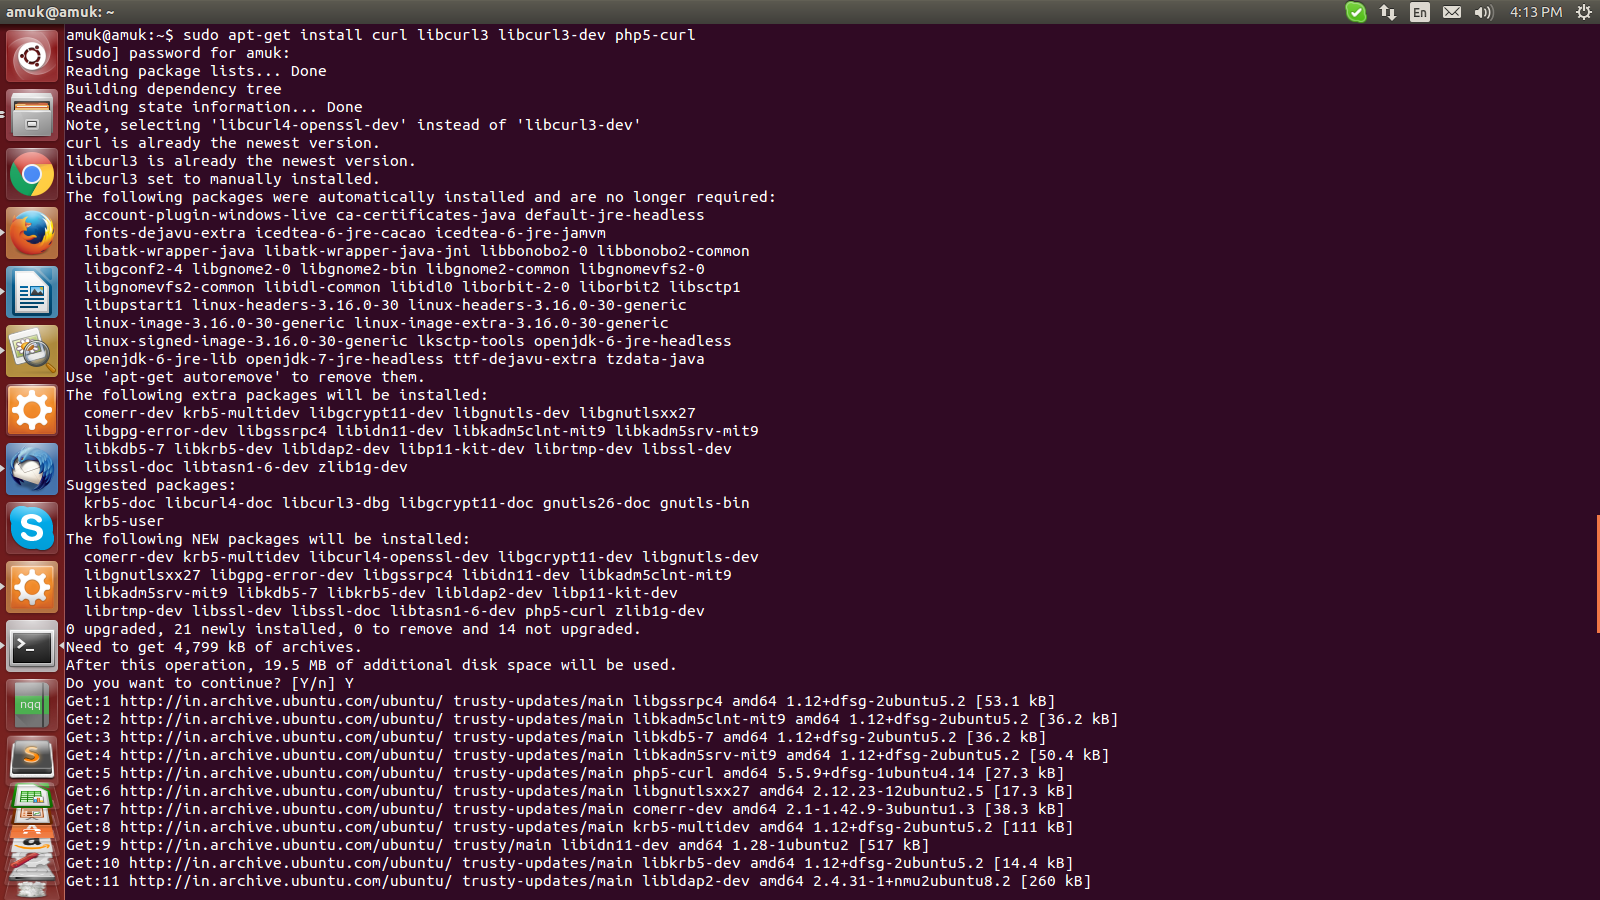 CURL: How to install curl on ubuntu 14 04